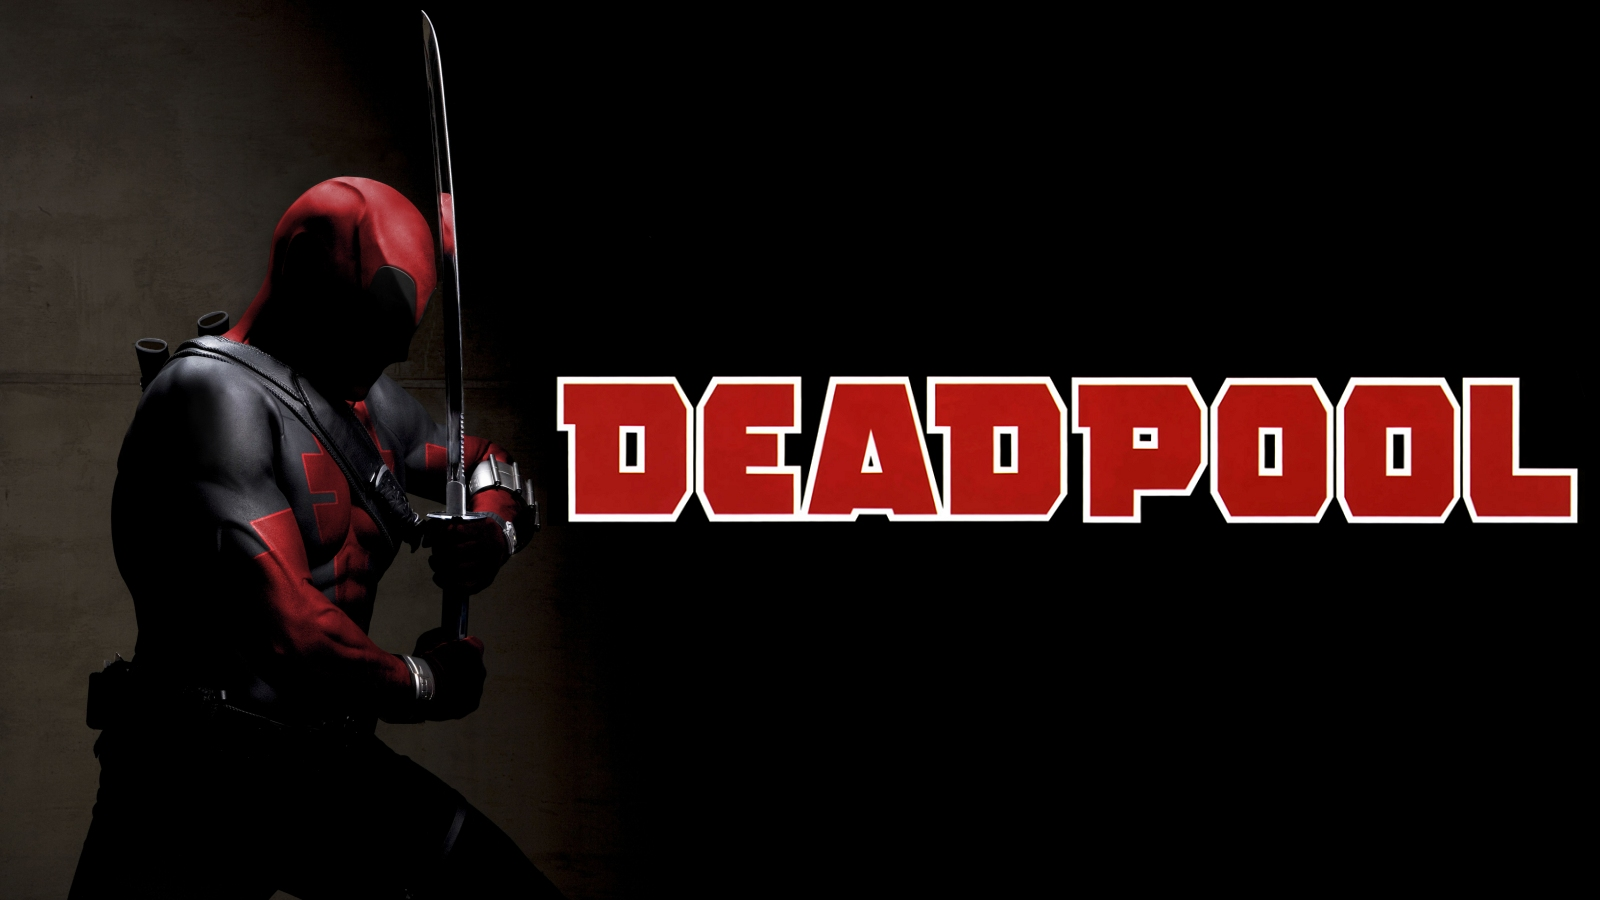 Deadpool wallpaper and background image 1600x900 id74493 comics deadpool superman merc with a mouth bleach wallpaper voltagebd Gallery